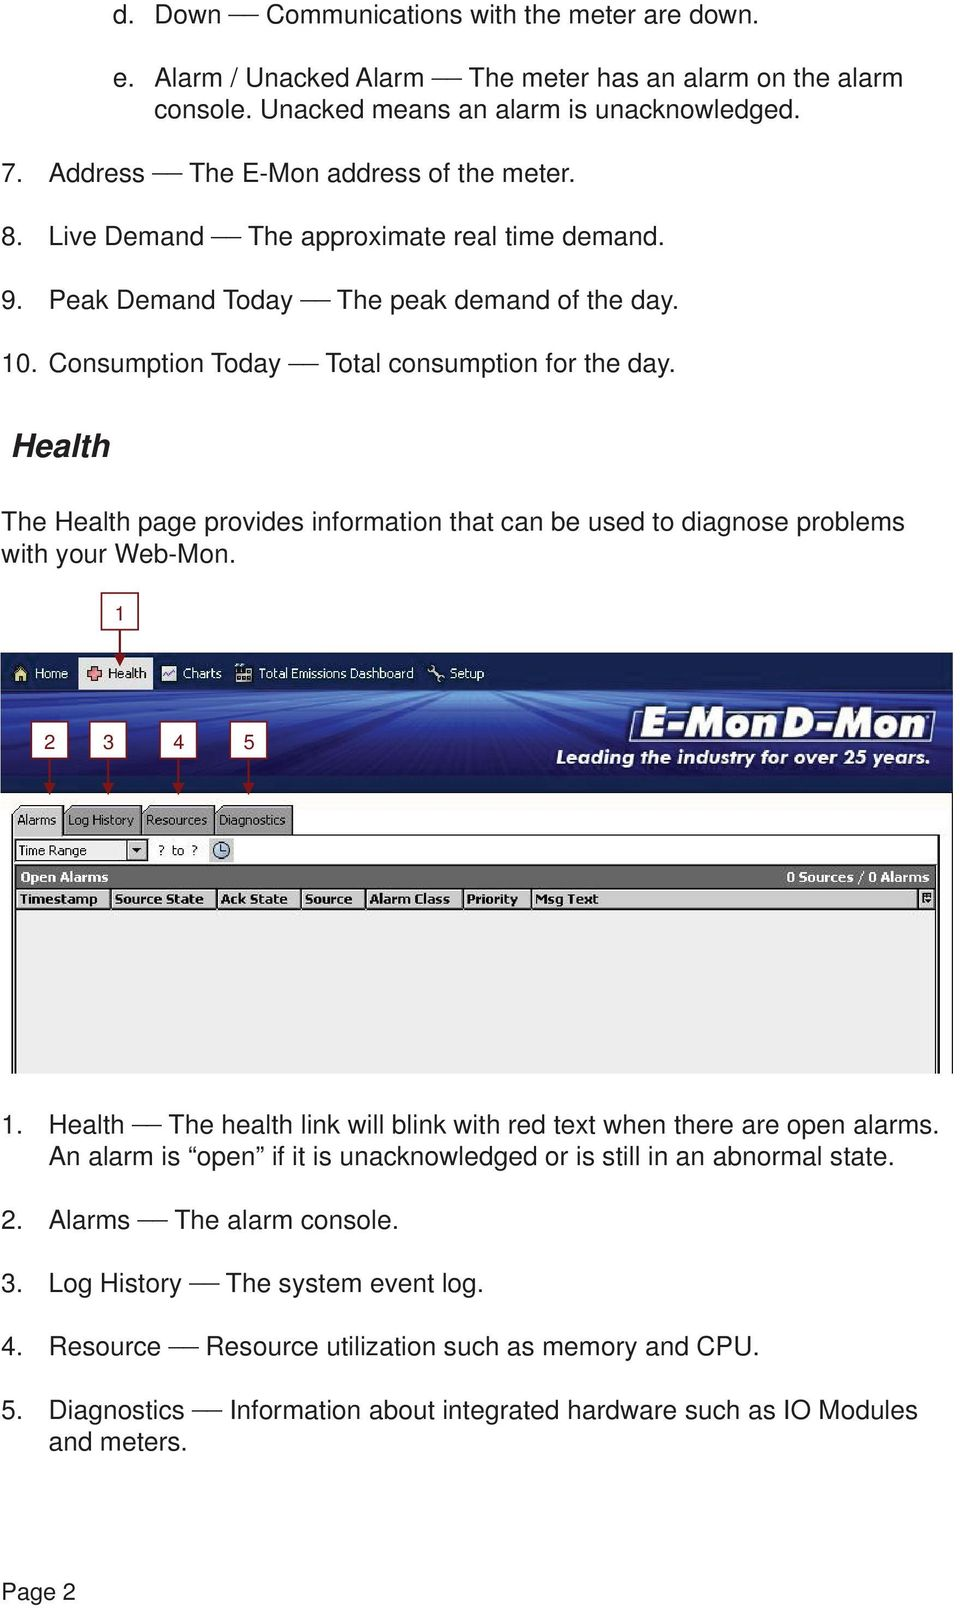 Health The Health page provides information that can be used to diagnose problems with your Web-Mon. 1 2 3 4 5 1. Health The health link will blink with red text when there are open alarms.